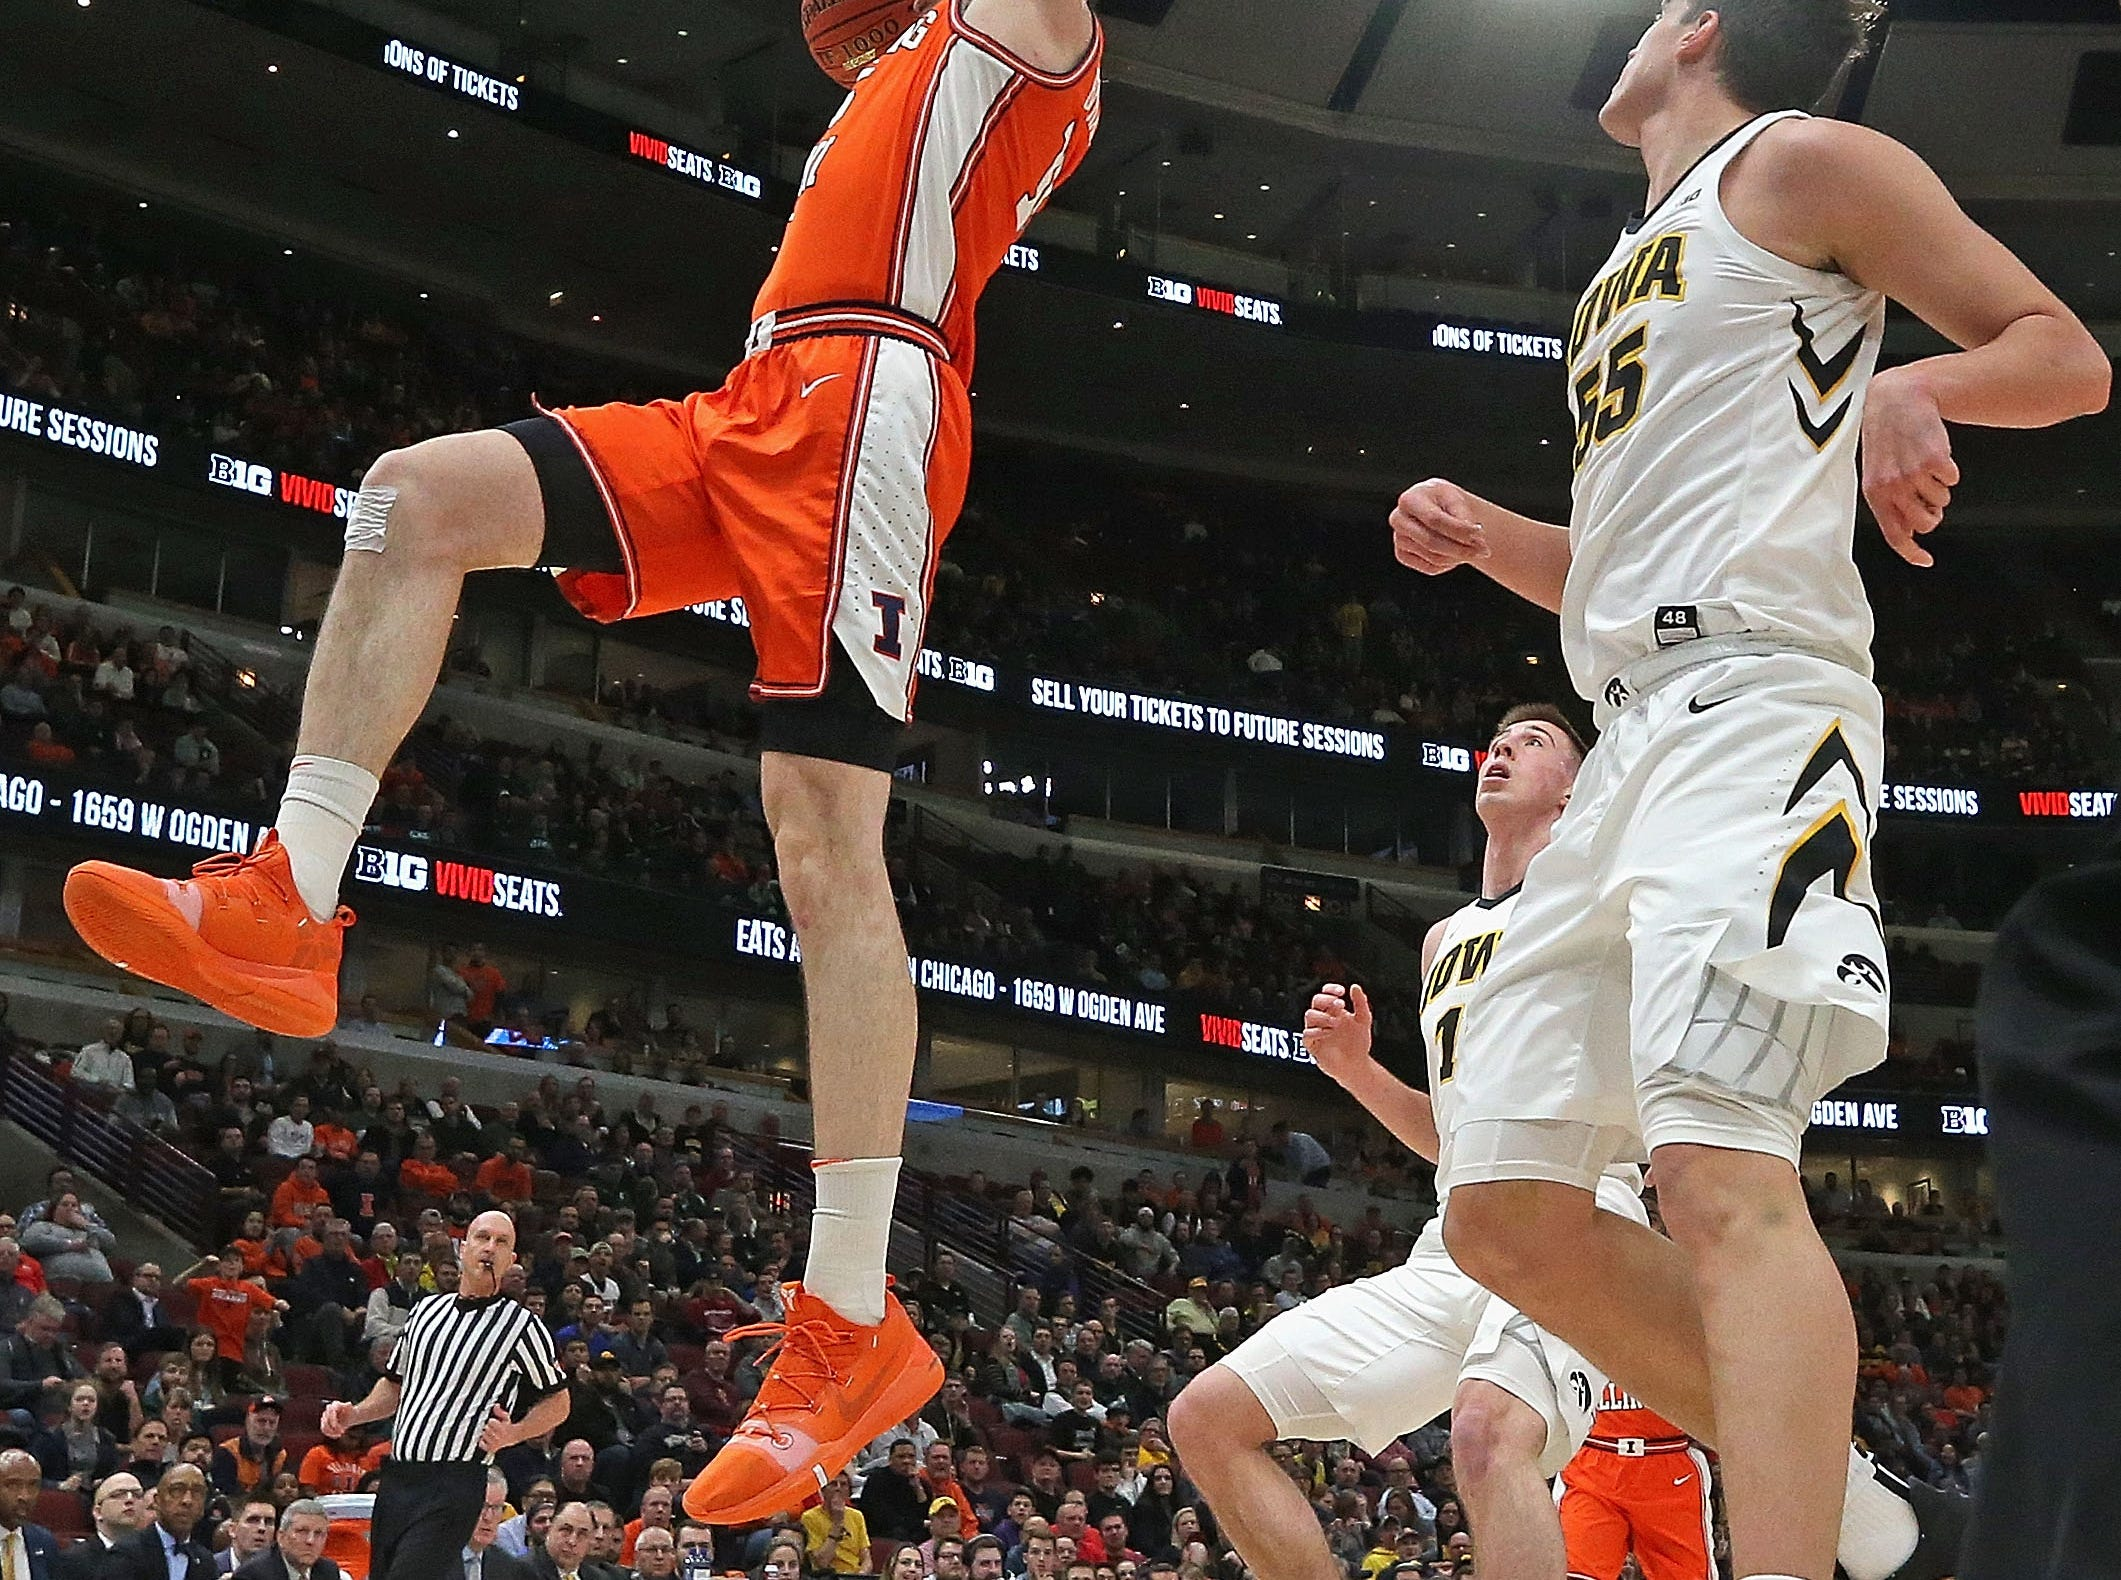 CHICAGO, ILLINOIS - MARCH 14: Giorgi Bezhanishvili #15 of the Illinois Fighting Illini dunks over Luka Garza #55 of the Iowa Hawkeyes at the United Center on March 14, 2019 in Chicago, Illinois.  (Photo by Jonathan Daniel/Getty Images)